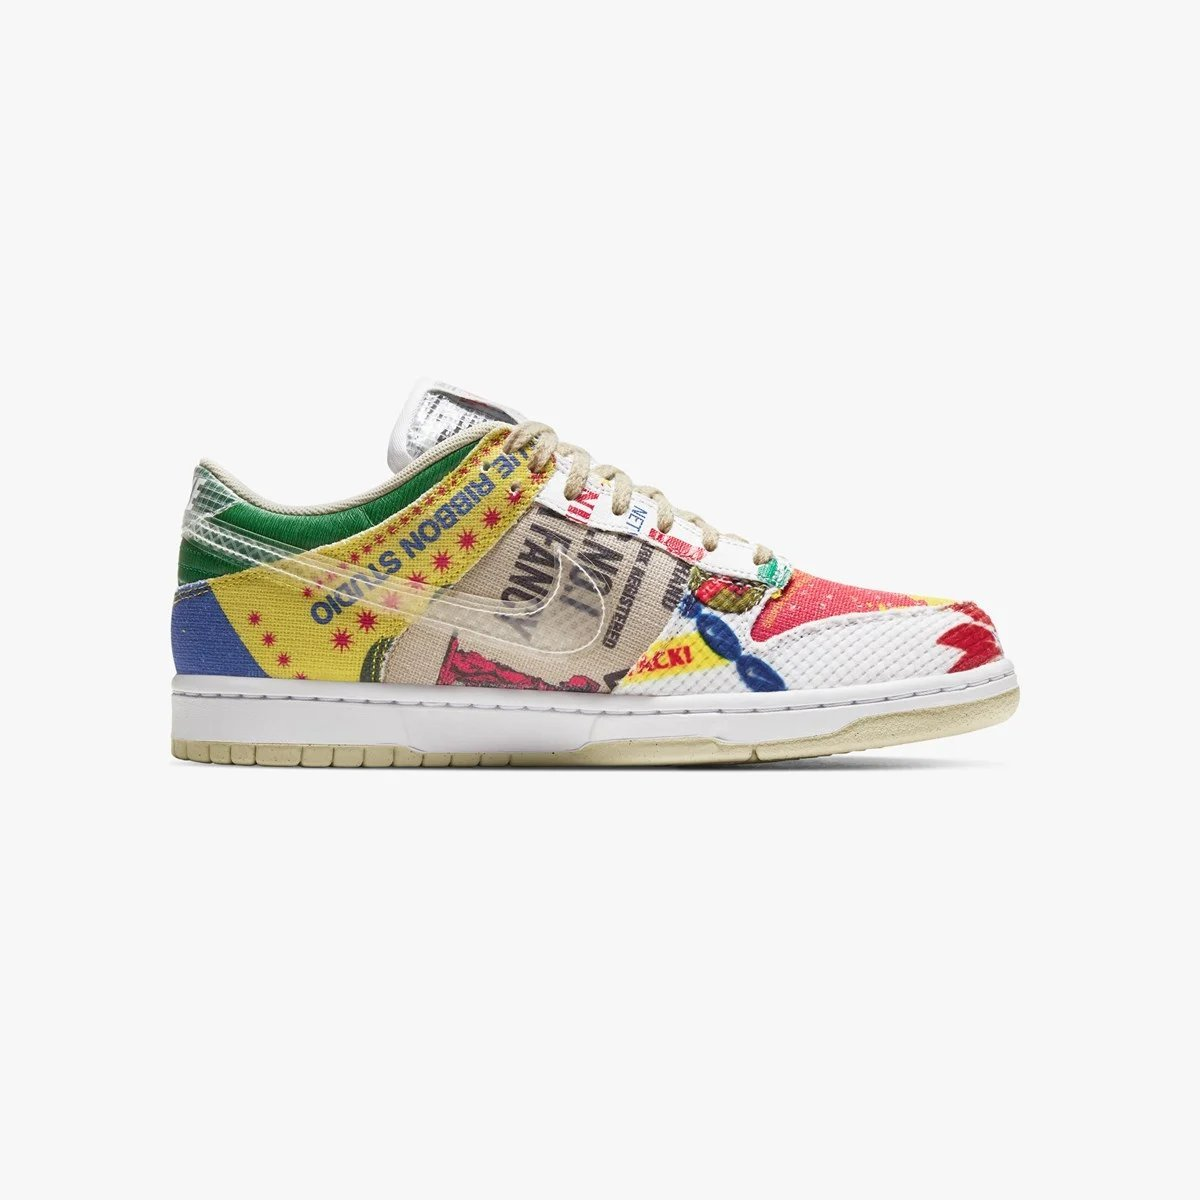 Overkill online raffle live for the Nike Dunk Low SP